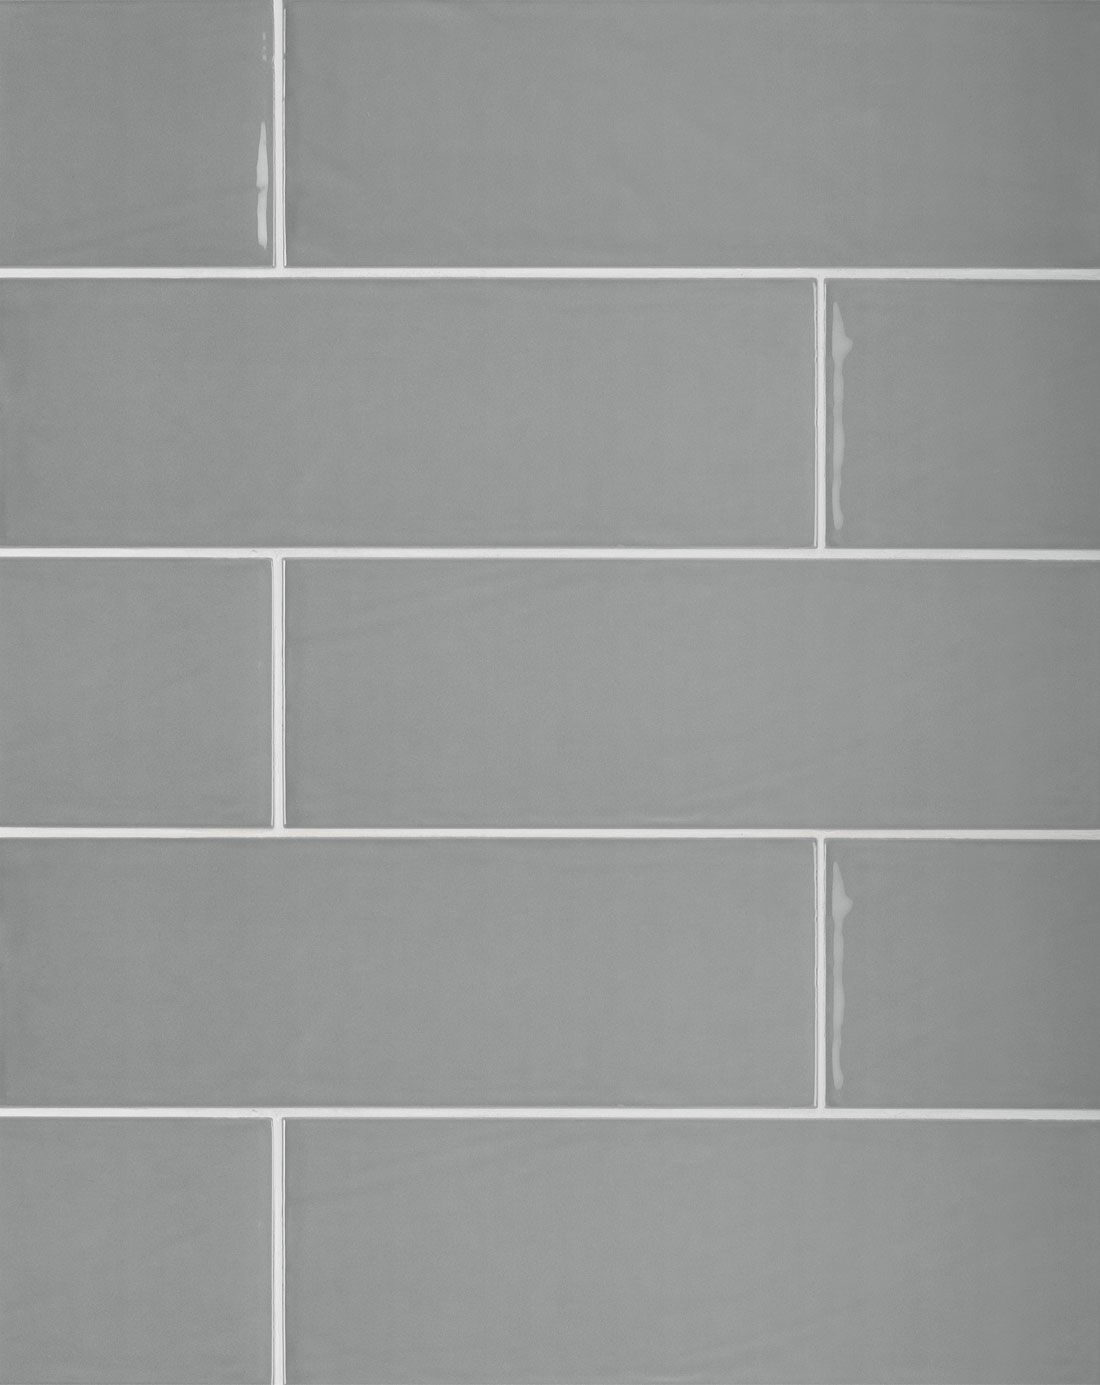 Bulevar ripple antique grey wall tile only 2508 grey wall bulevar ripple antique grey wall tile only 2508 dailygadgetfo Choice Image